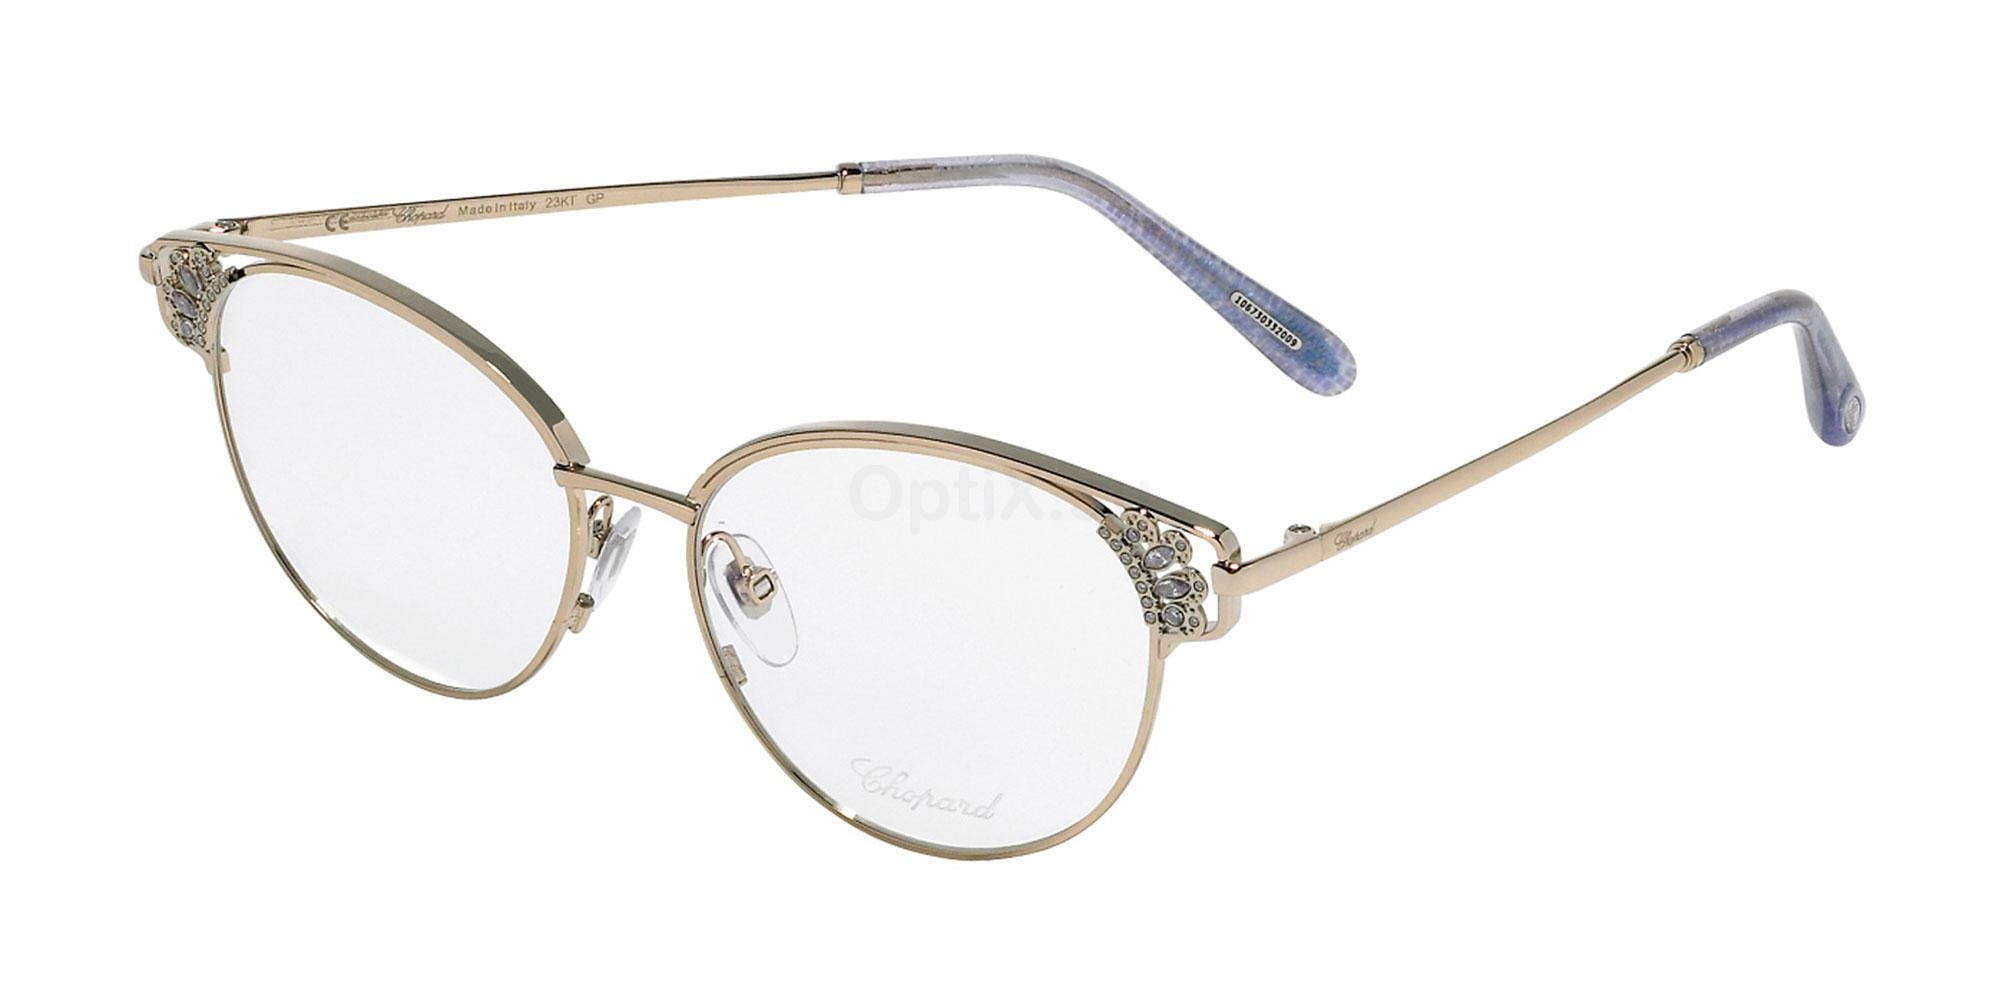 0594 VCHC51S Glasses, Chopard